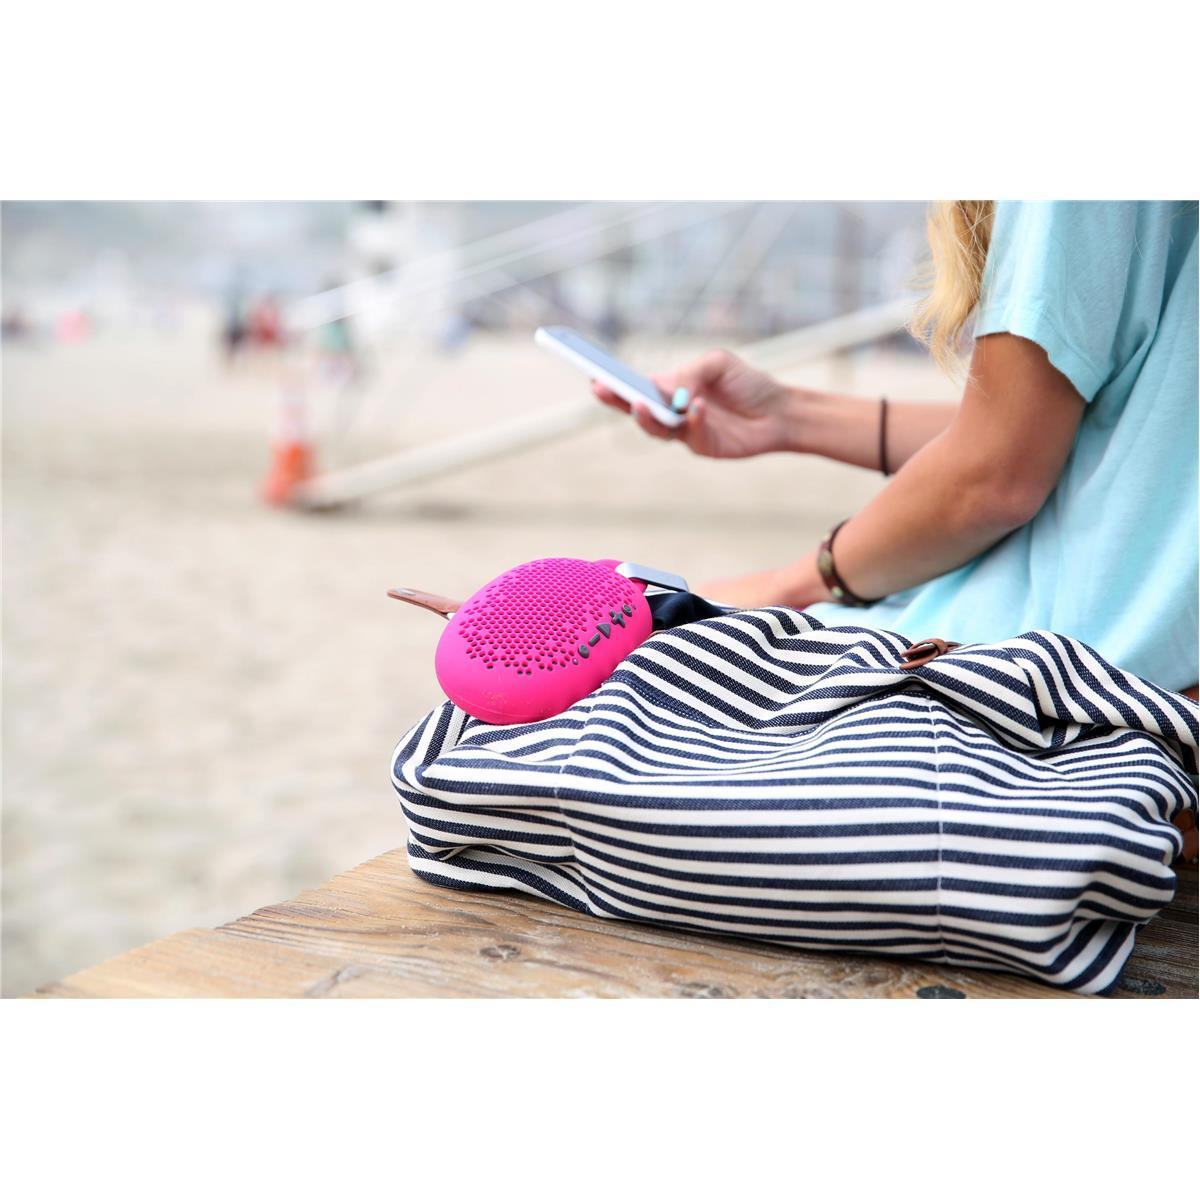 BOOM Urchin Ready 4 Anything Water Resistant Bluetooth Speaker (Available in 4 colors)